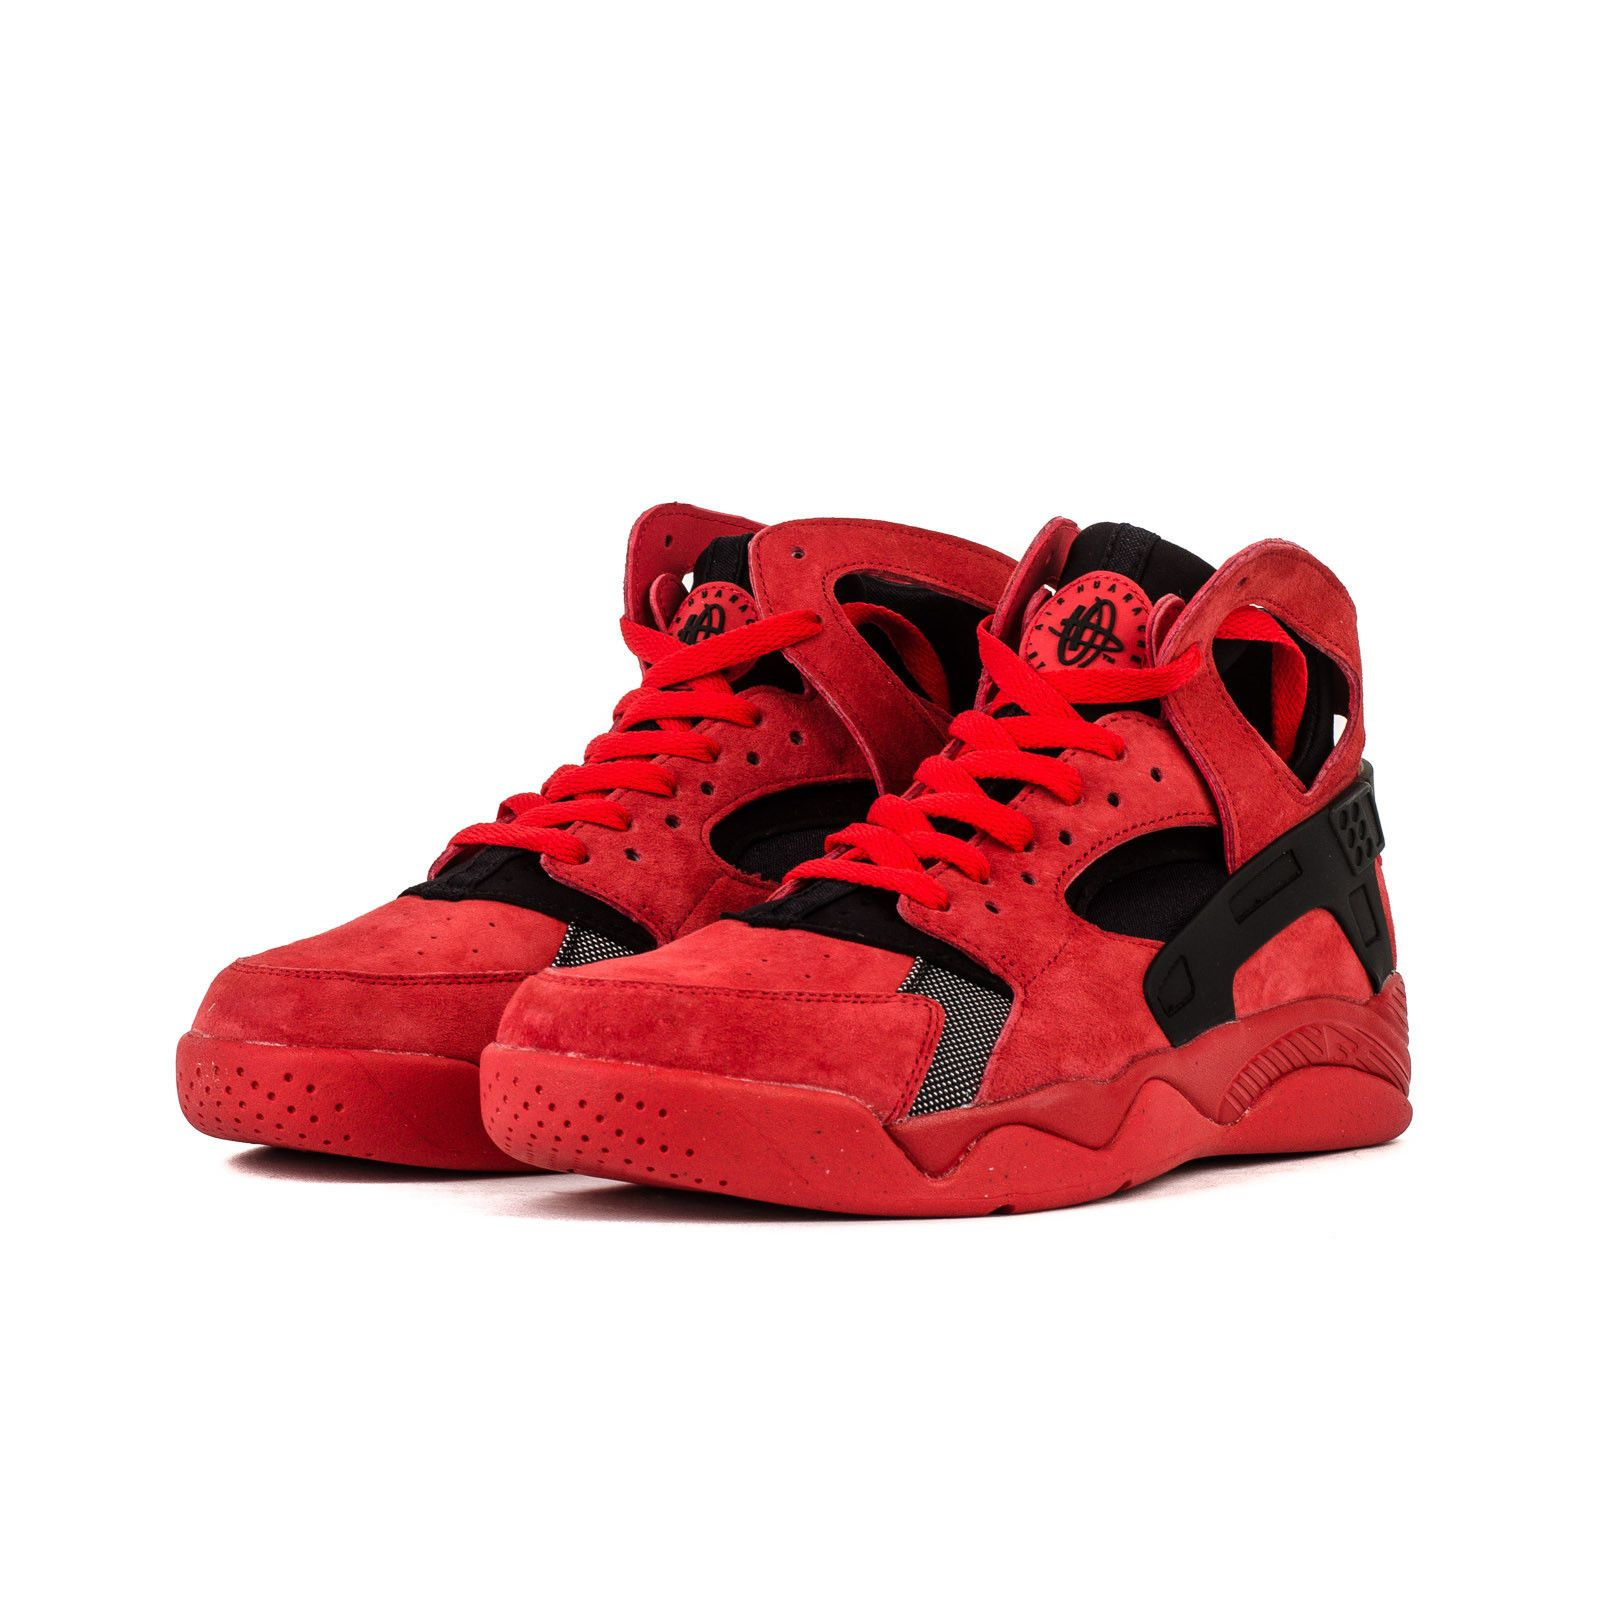 405c50b5033 Men s Nike Air Flight Huarache Love Hate Yeezy QS Basketball Red 705005 600